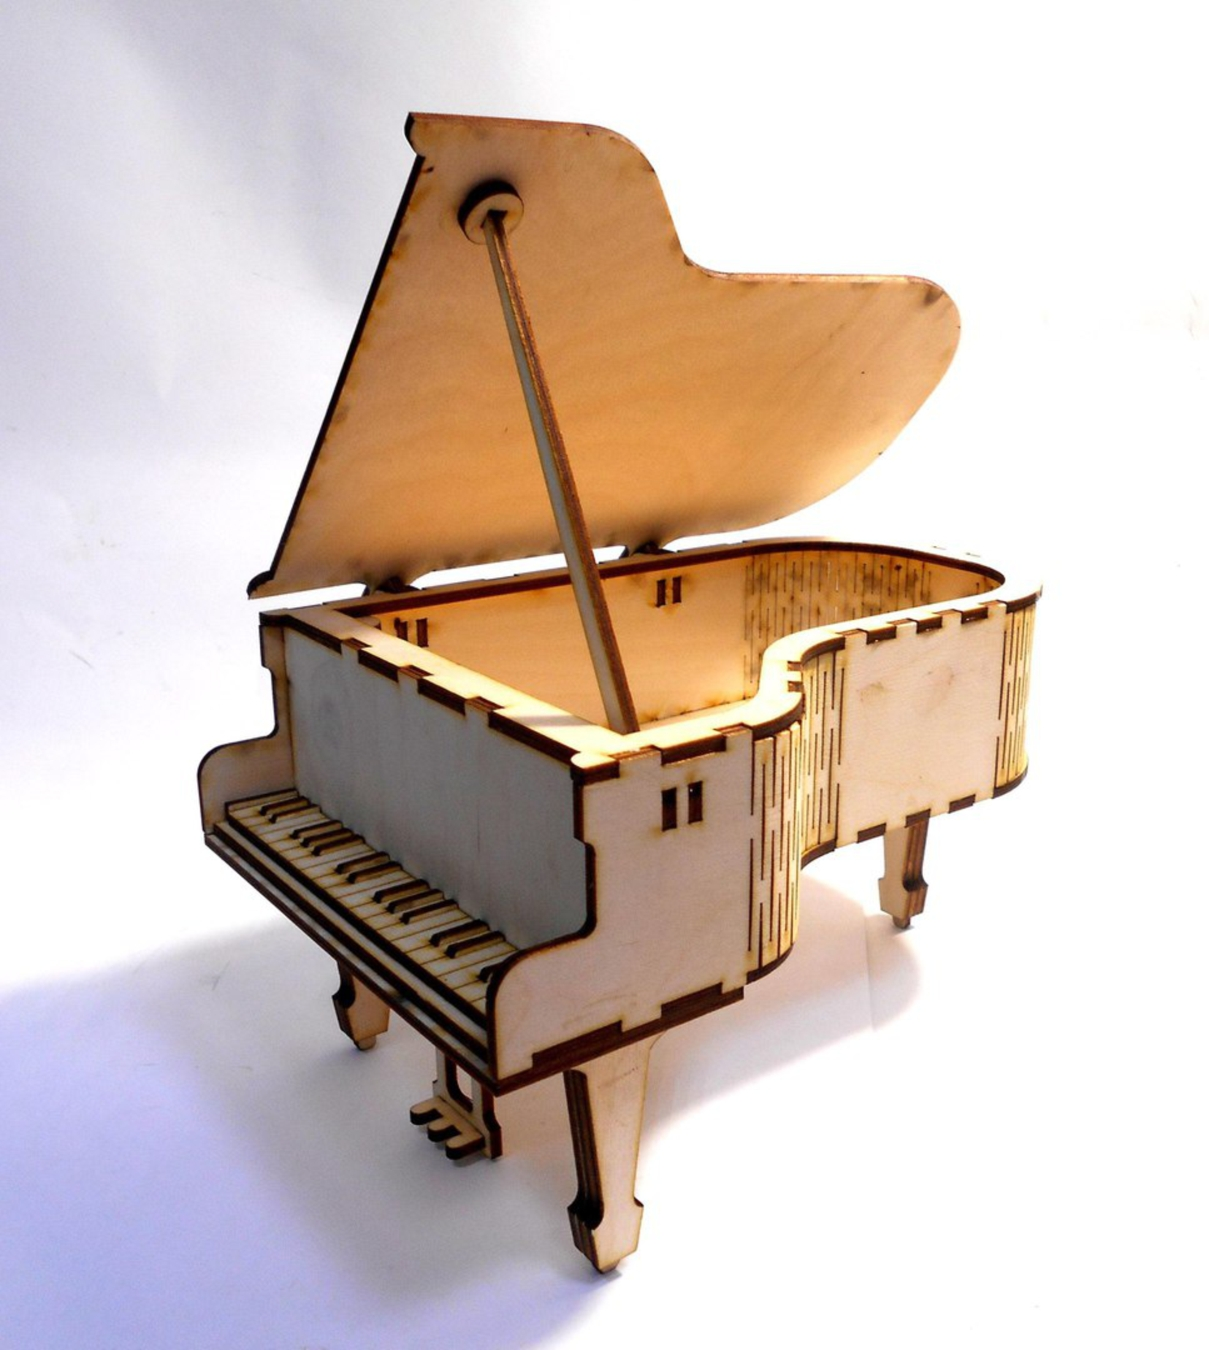 Laser Cut Piano Musical Toys For Kids Free Vector